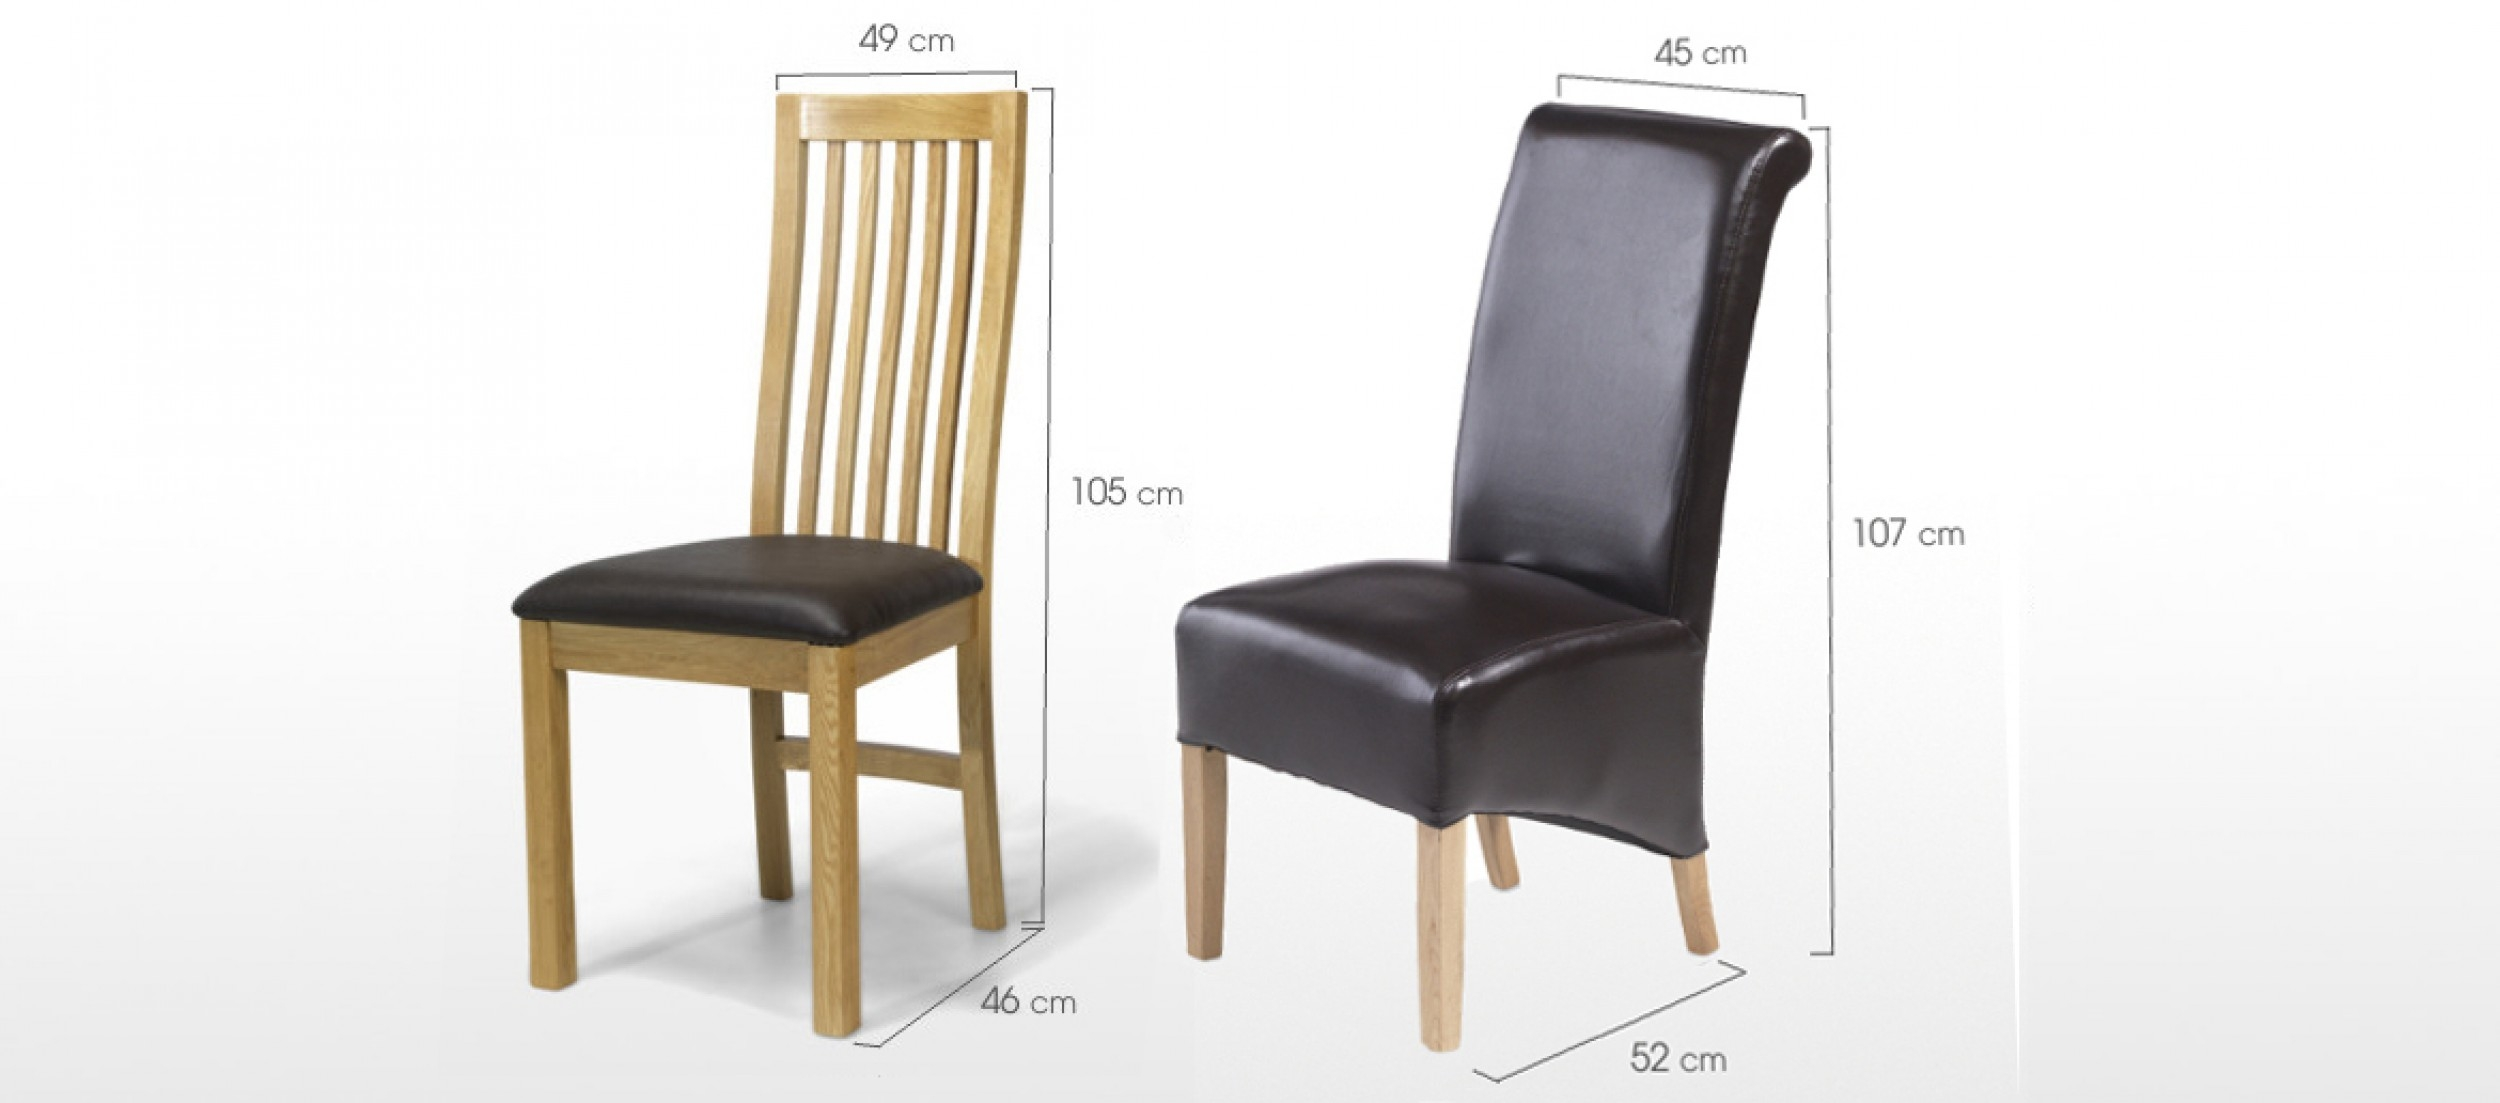 Dining Chair Dimensions Standard Review Of 3 Ideas In 3 – layjao